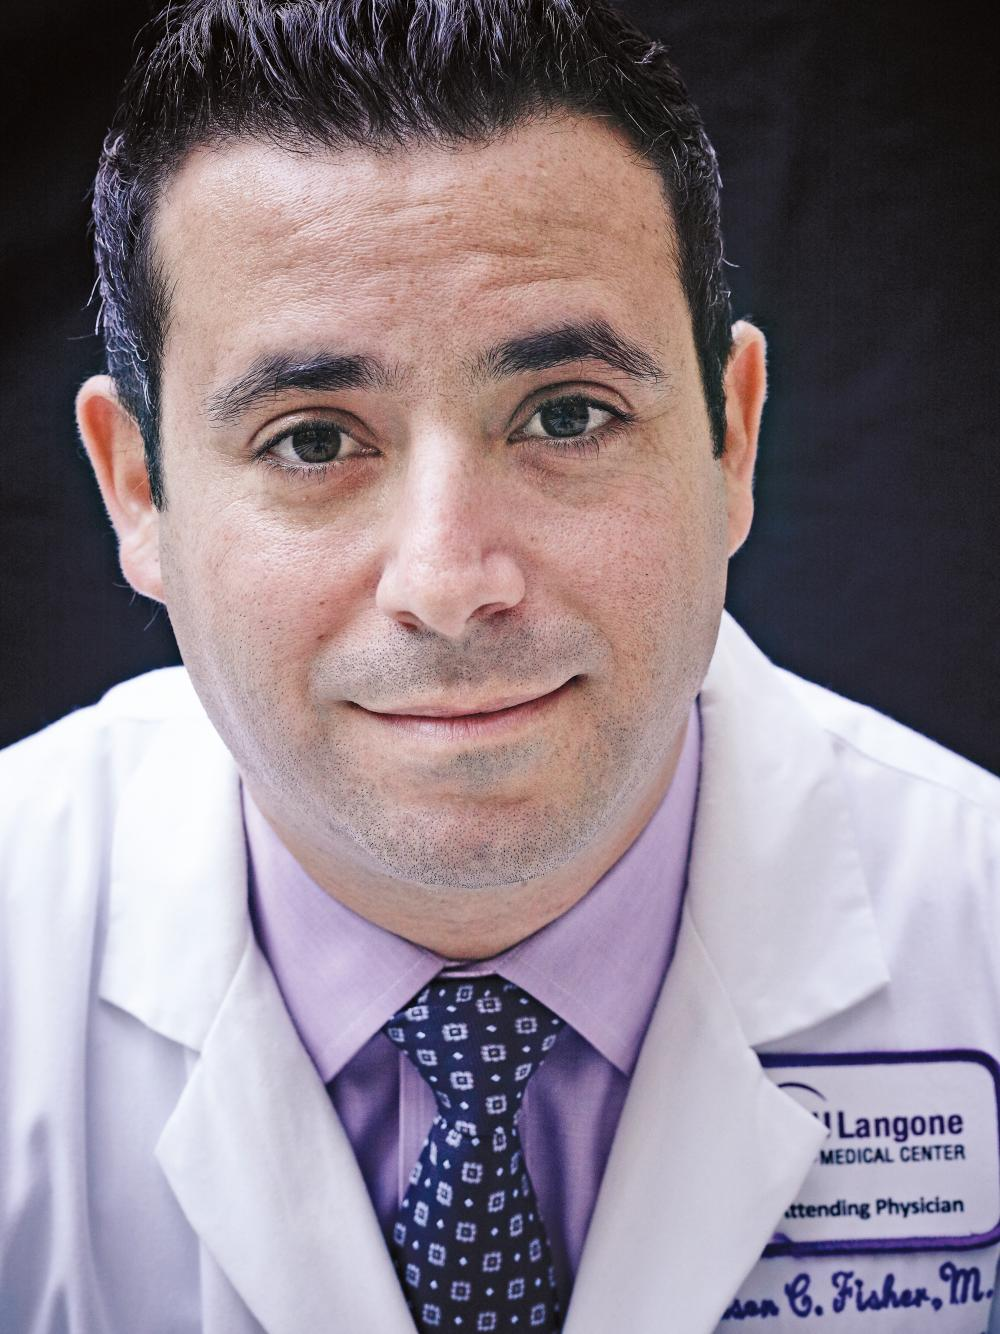 Pediatric Surgeon Dr. Jason Fisher